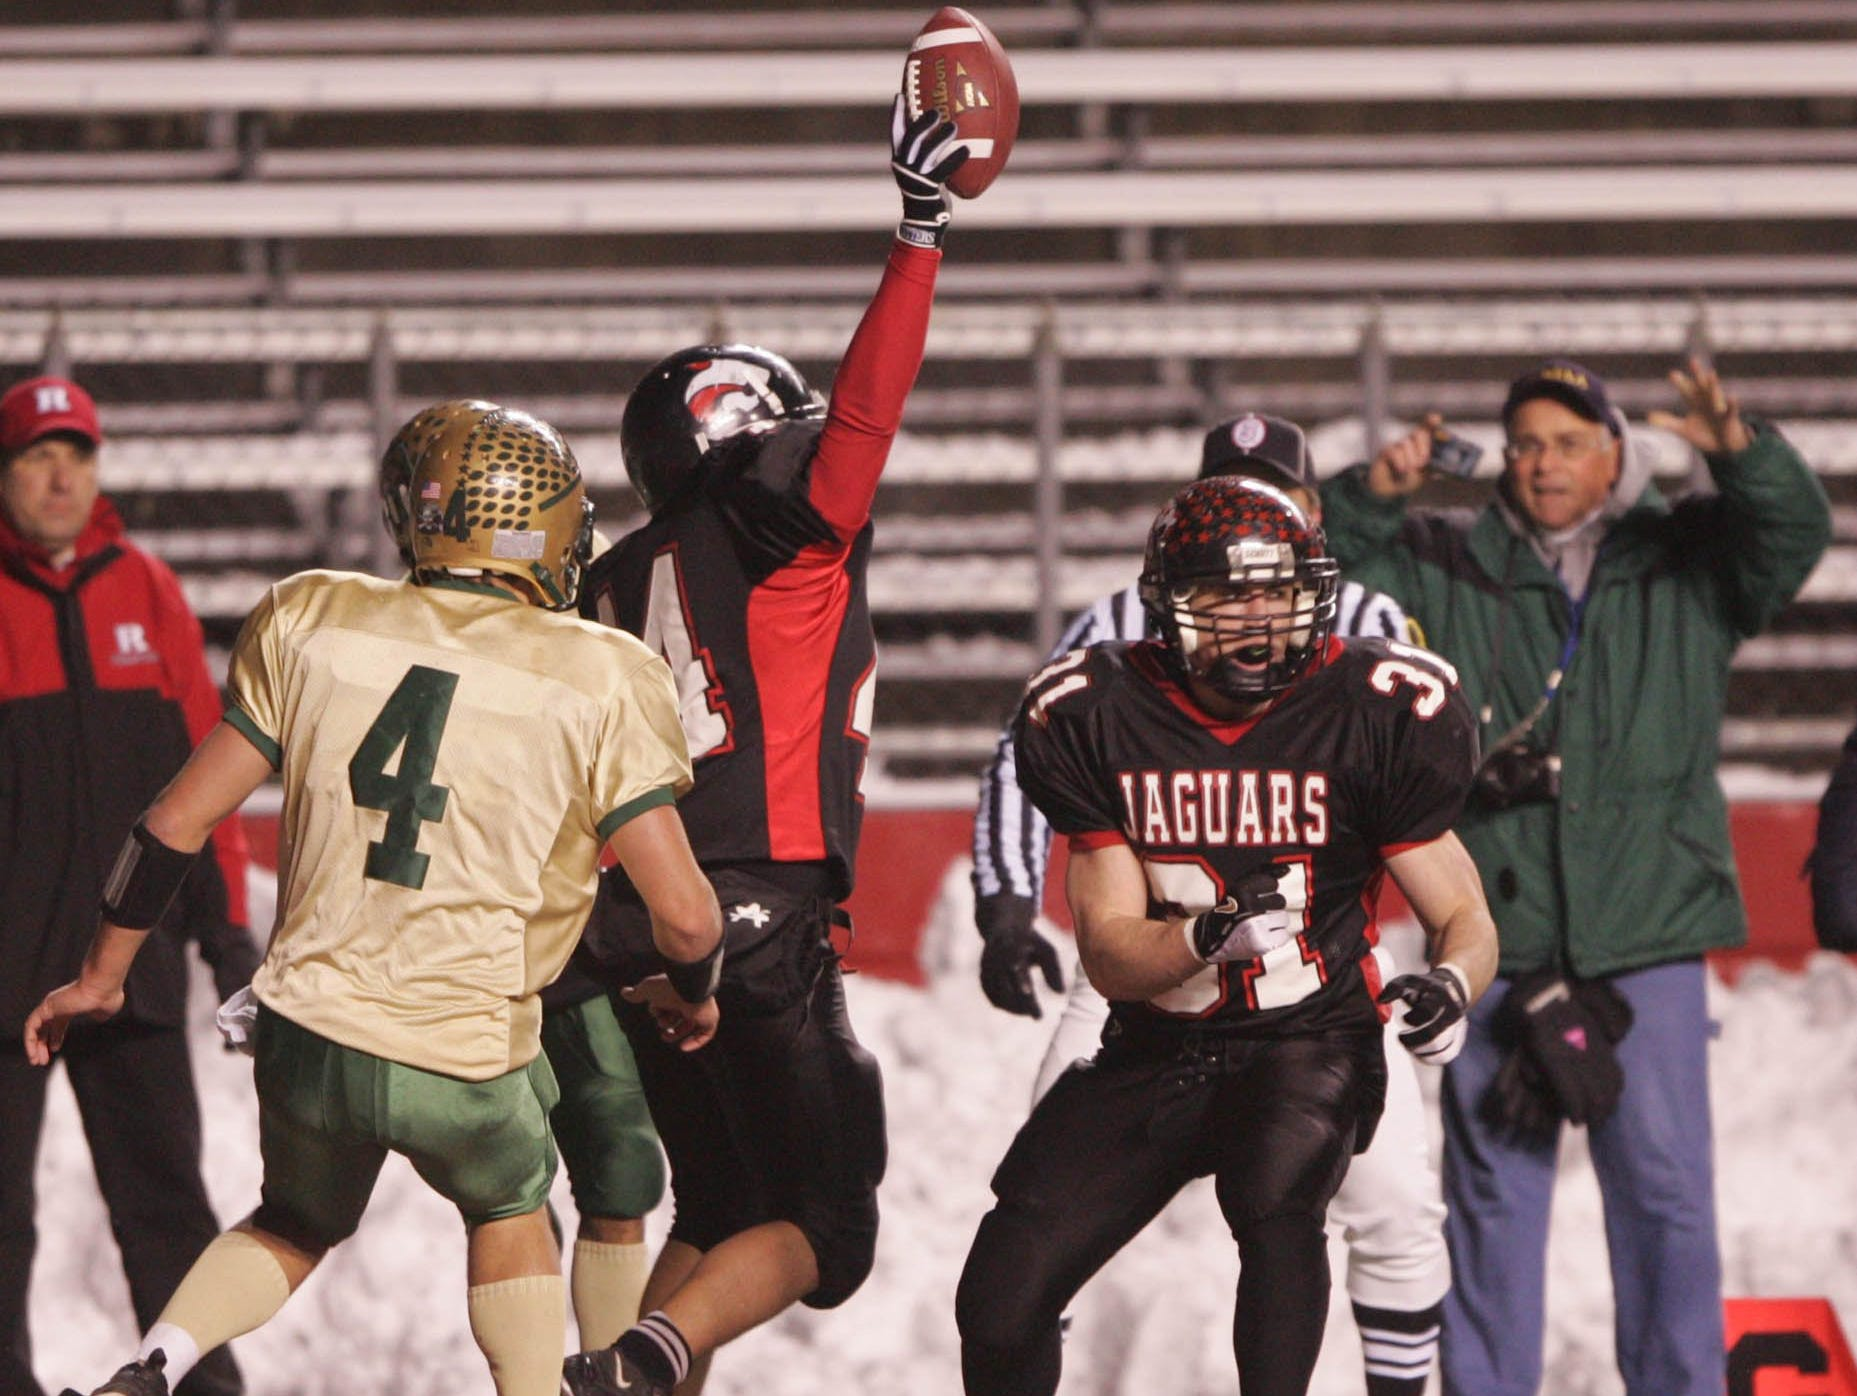 Jackson Memorial's Joe Reggio catches the game winning touchdown pass on the final play to beat Brick Memorial in the 2005 CJ Group IV championship game at Rutgers.